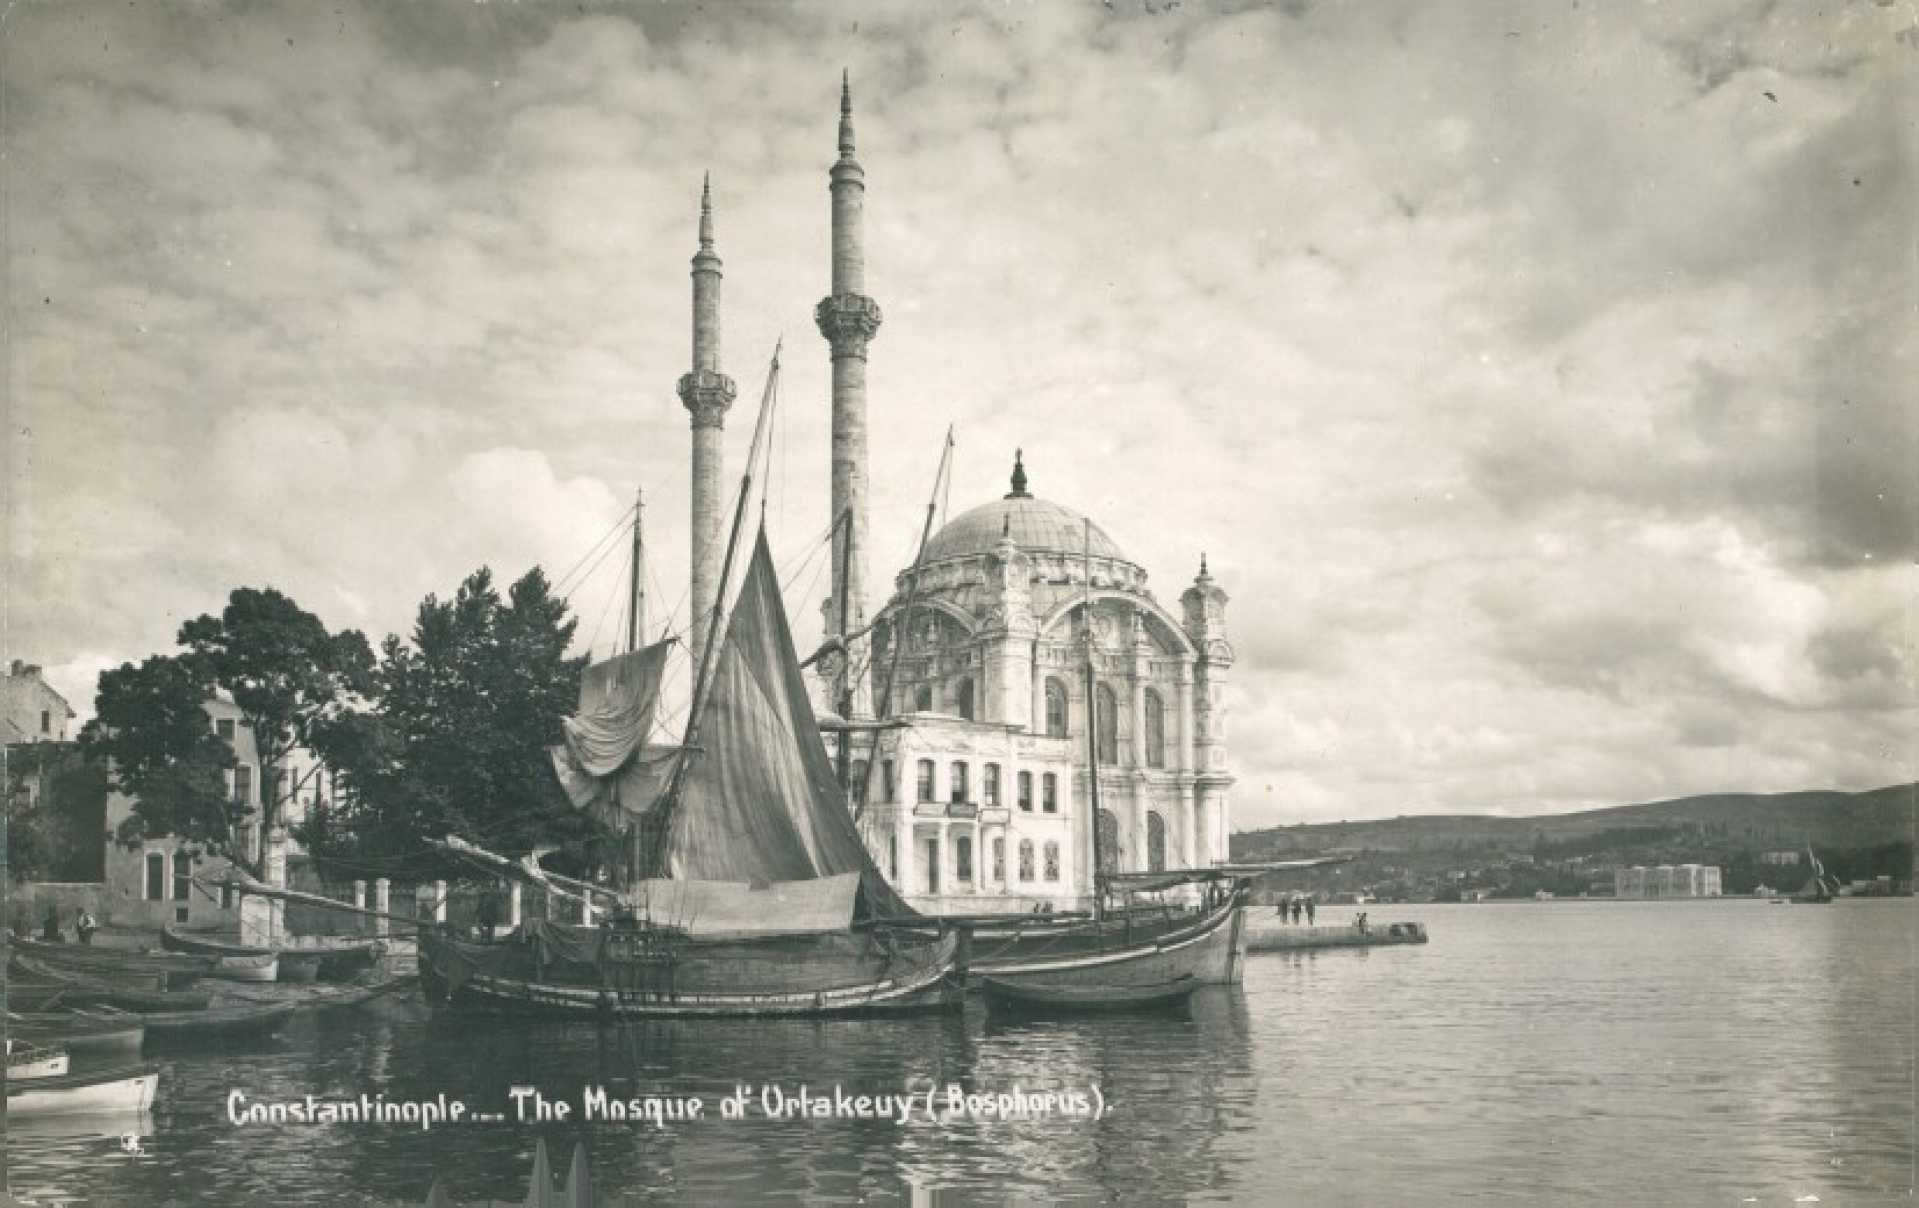 The mosque of Ortakeuy